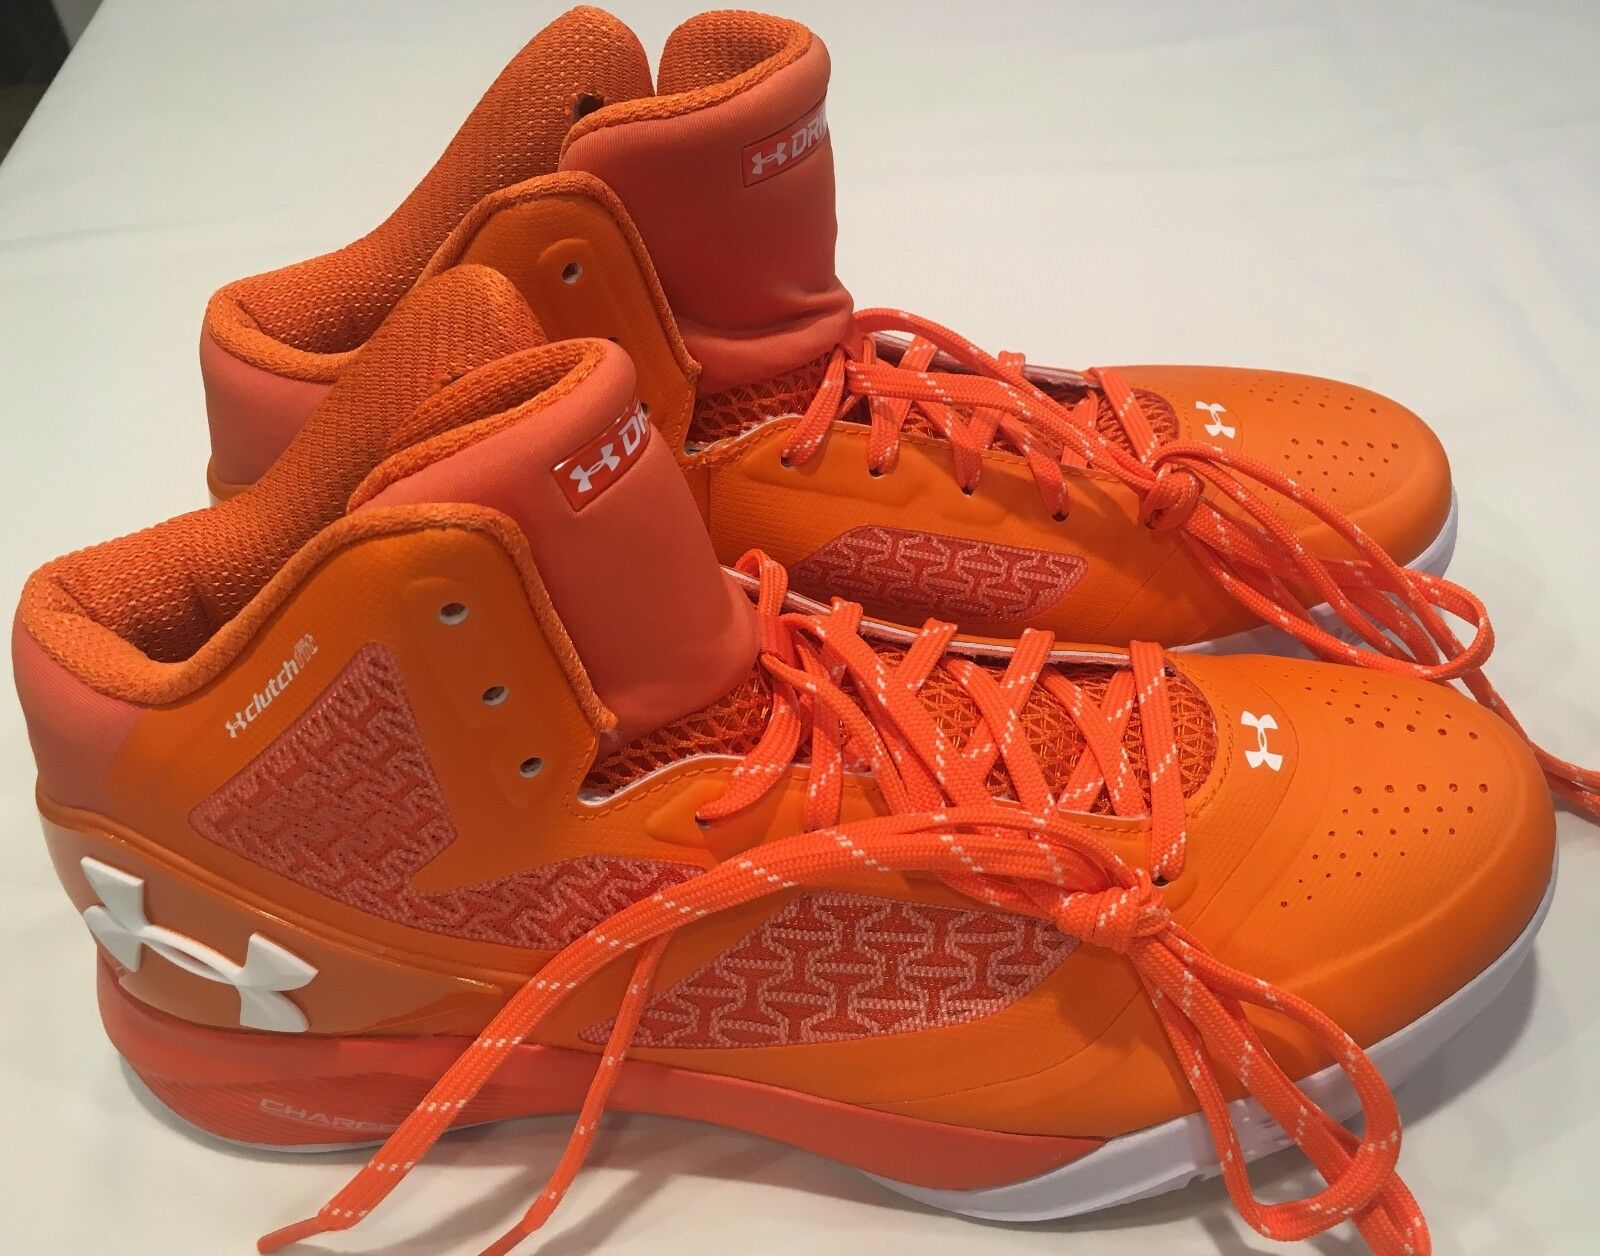 NWT mens size 11.5 UNDER ARMOUR shoes DRIVE clutch fit ORANGE basketball sneaker